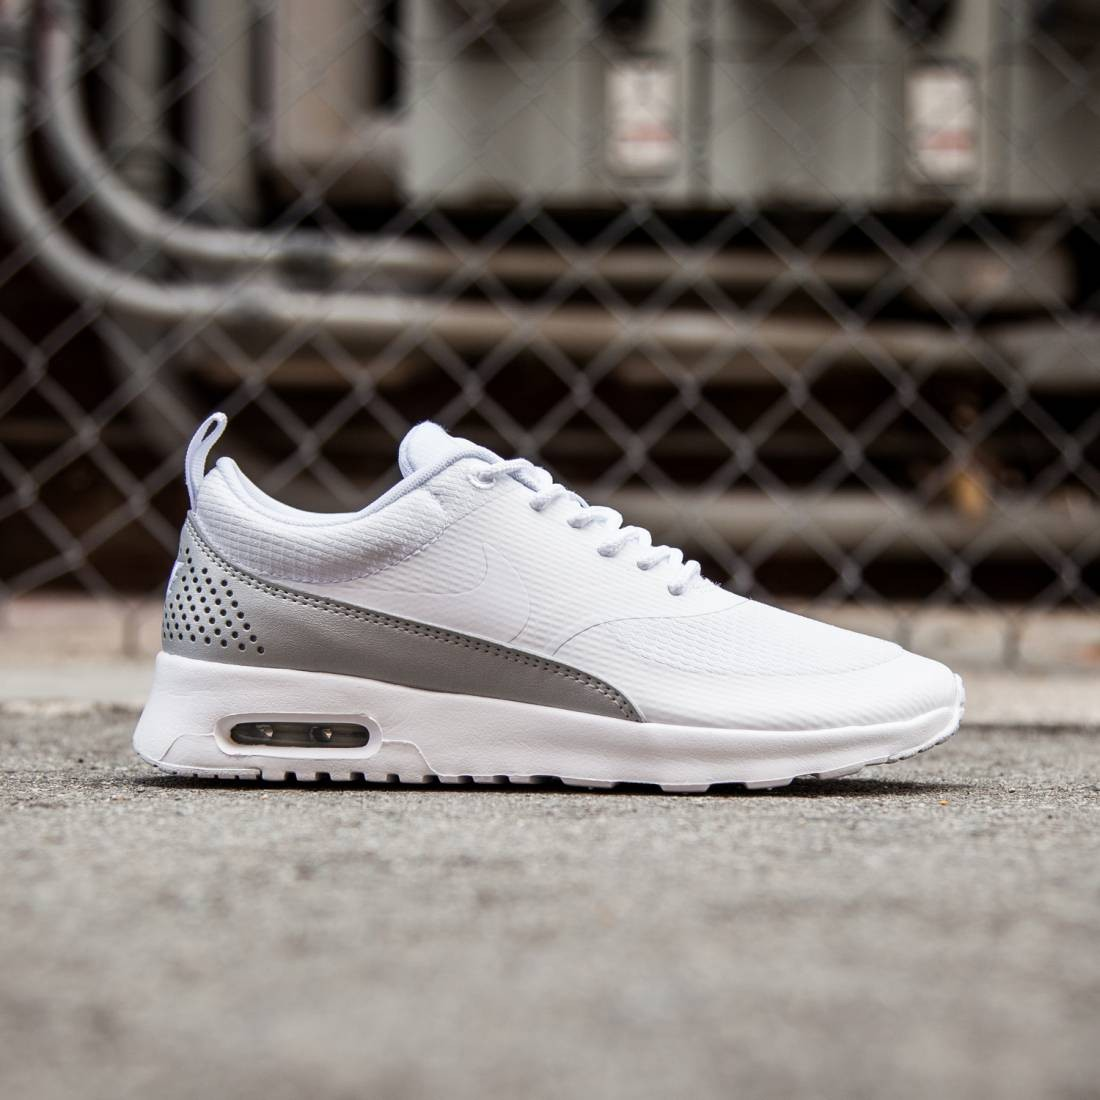 grossiste 5c6ba 7d4f7 Nike Women Air Max Thea Textile (white/mtlc platinum/pure platinum/white)